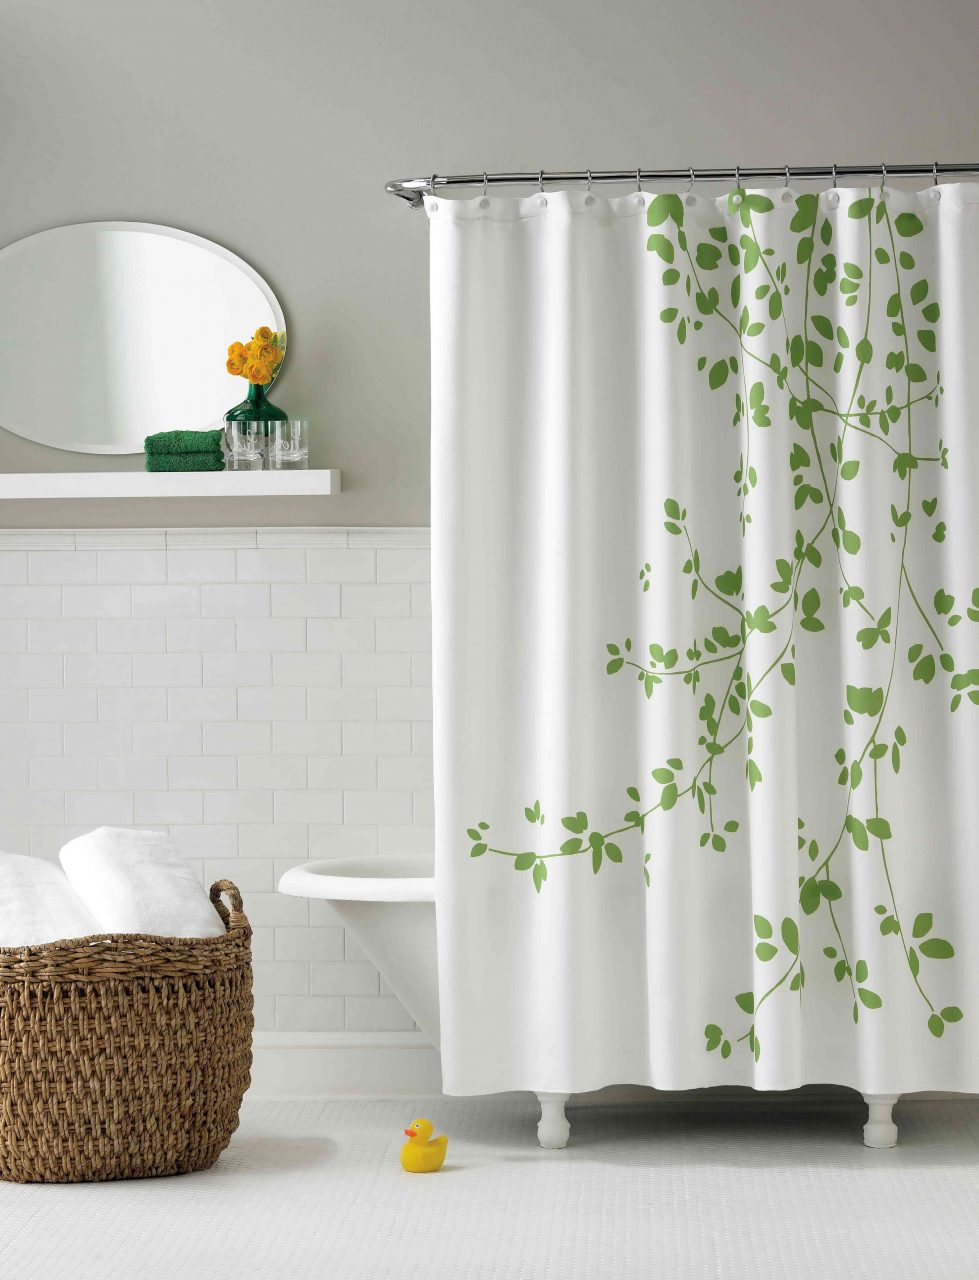 Small Bathroom Shower Curtain House Wallpaper Hd